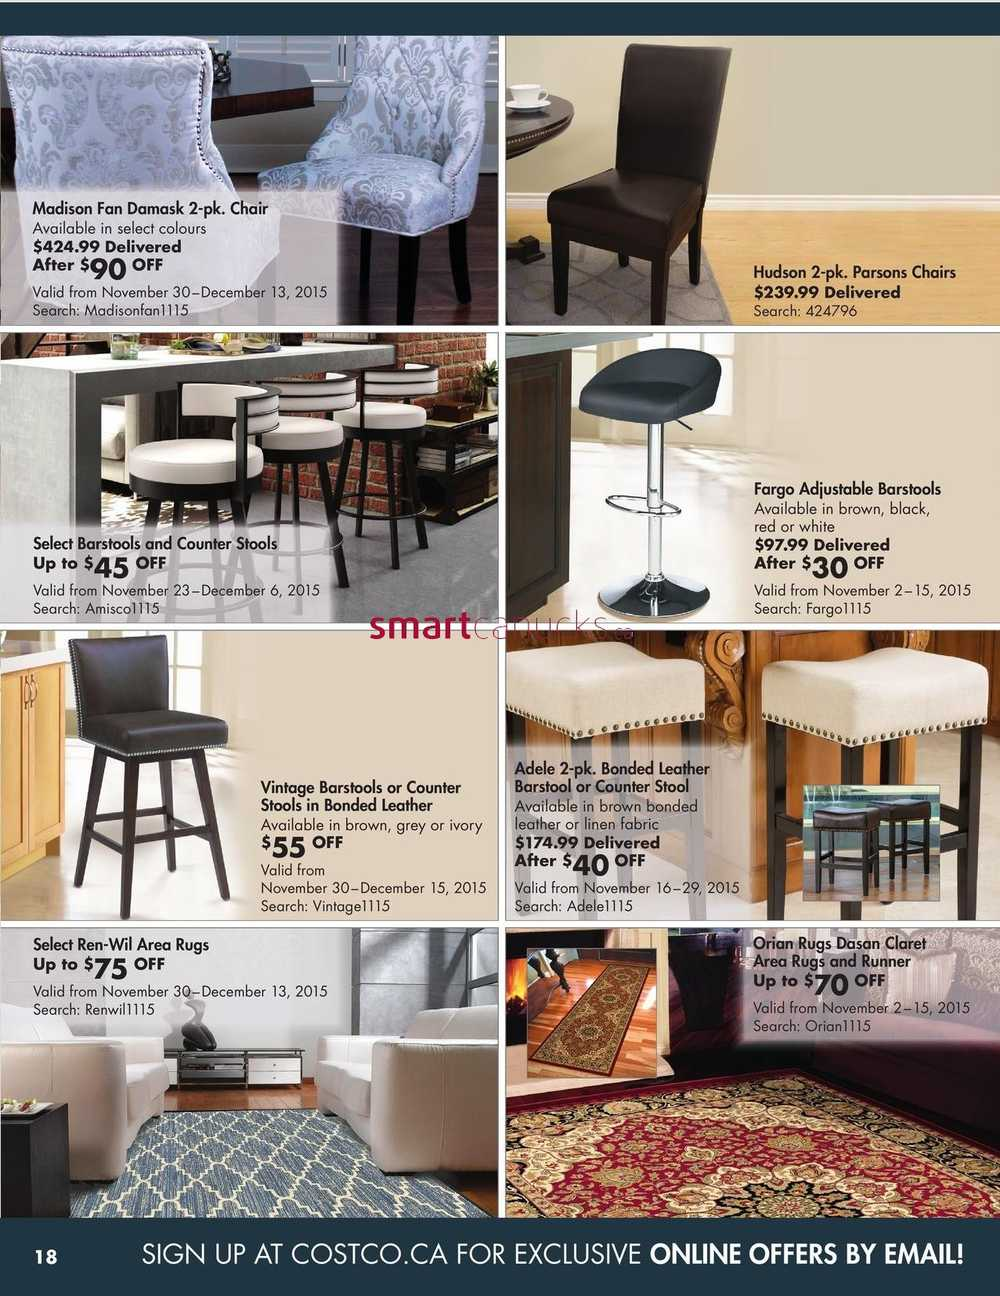 Costco Online Shopping Catalog Costco Online | Costco Stores | Costco Coupons – Enjoy low prices on electronics,furniture and buddybond.mlale online shopping! Costco Wholesale Corporation, trading as Costco, is an American multinational corporation which operates a .